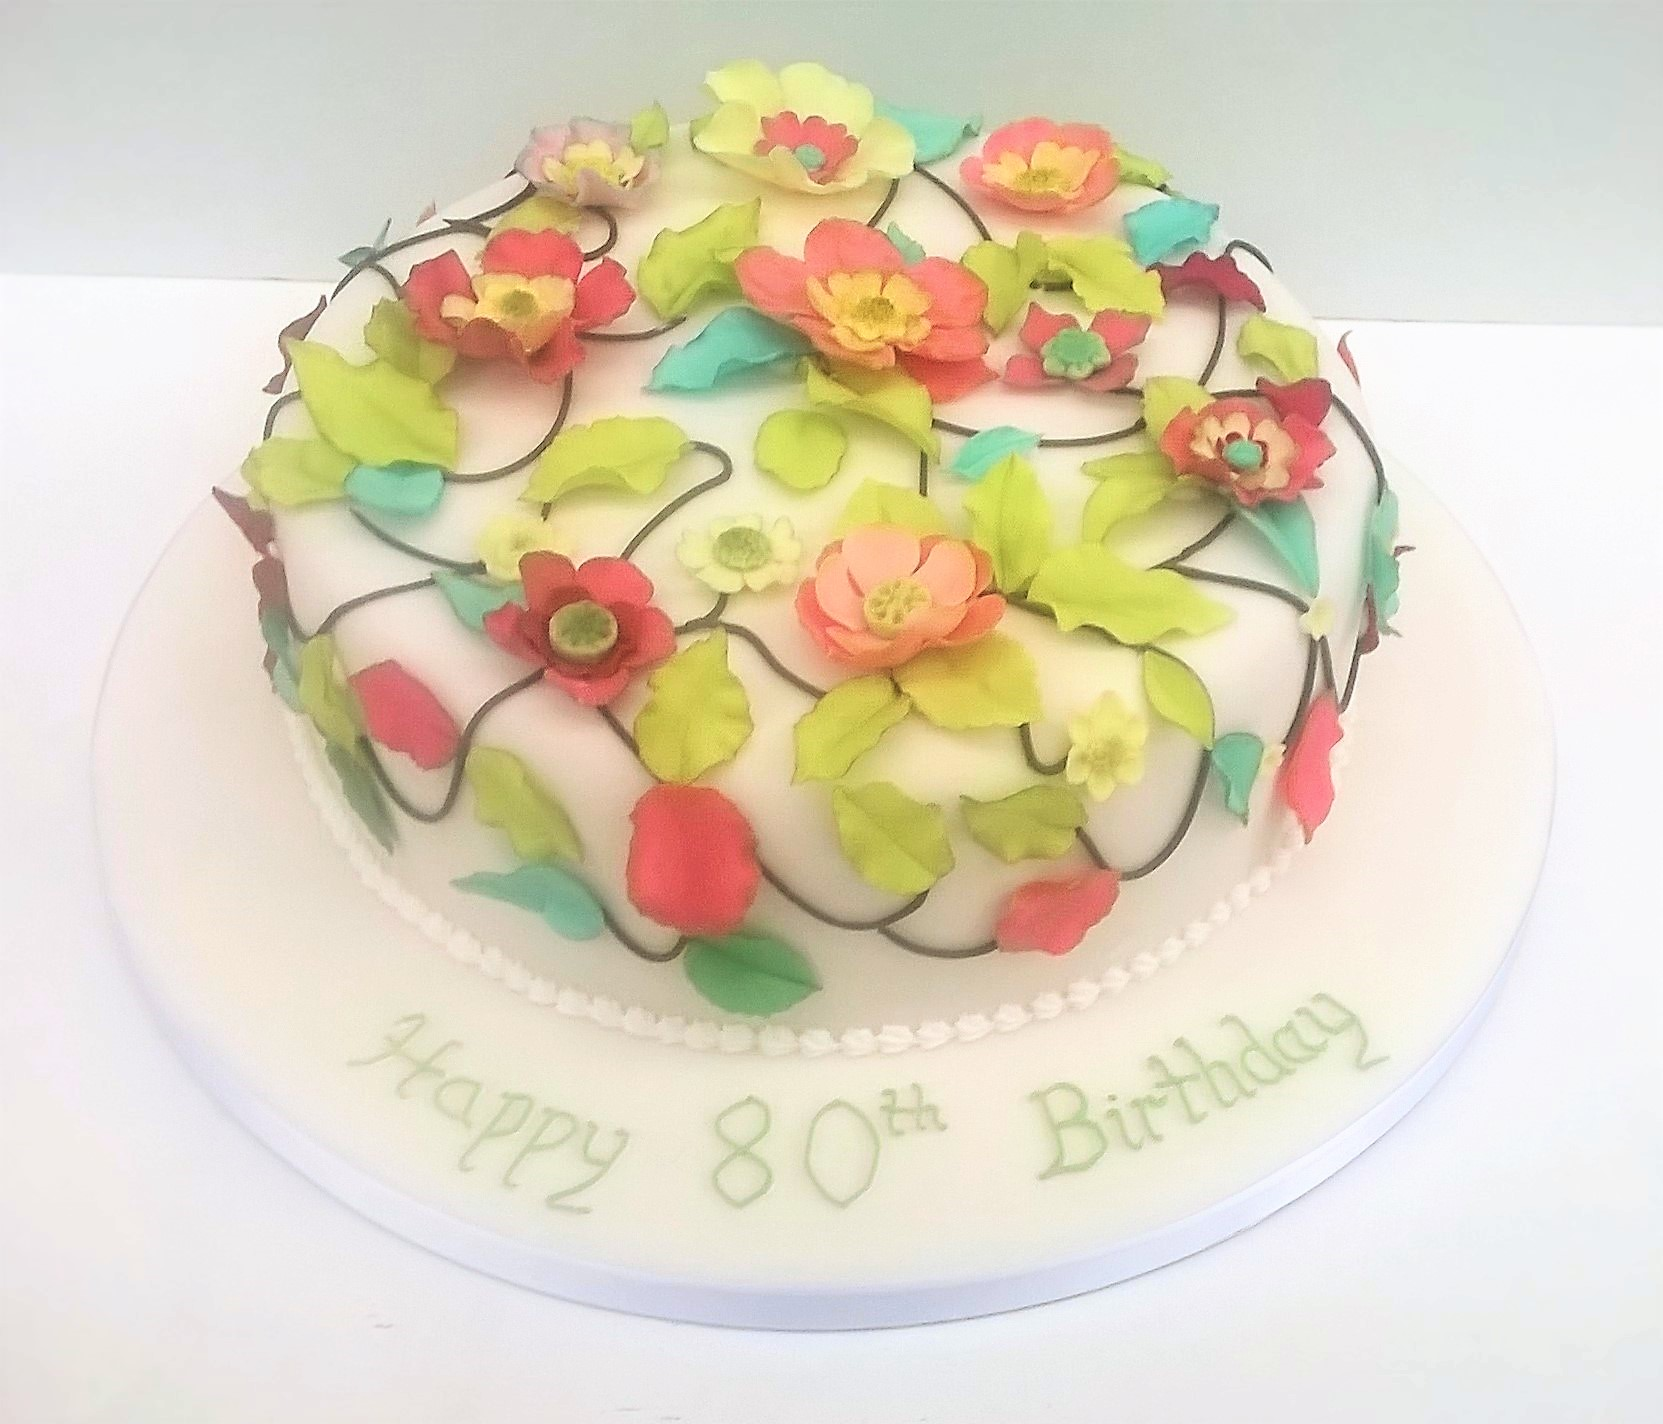 Party cake with sugar fantasy flowers and leaves